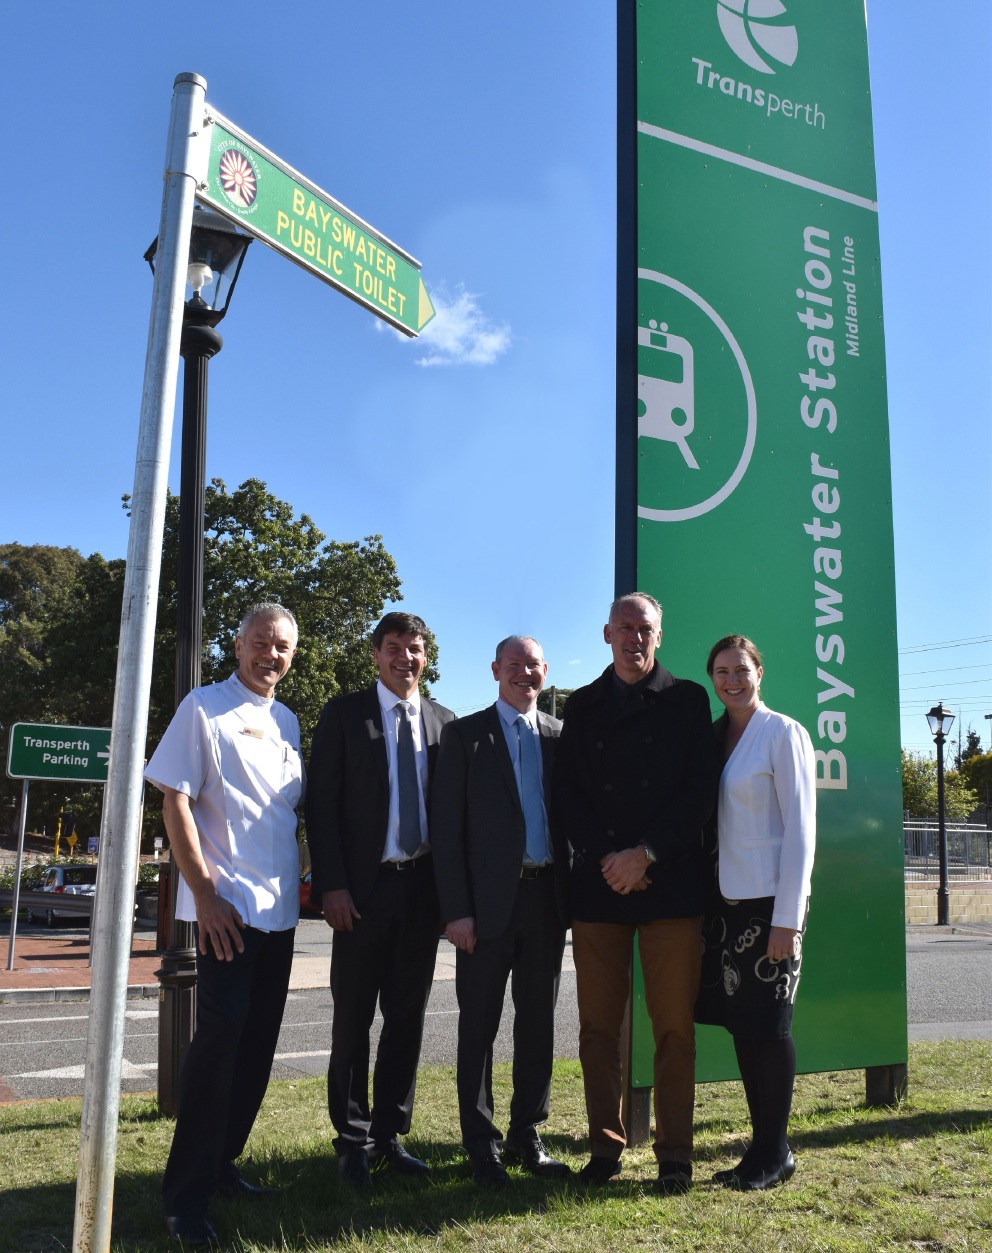 Bayswater Village Retail Traders Association member Greg Da Rui, Federal Assistant Minister for Cities and Digital Transformation Angus Taylor, Perth Liberal candidate Jeremy Quinn, Future Bayswater members Paul Shanahan and Michelle Prior at the Bayswater Train Station.